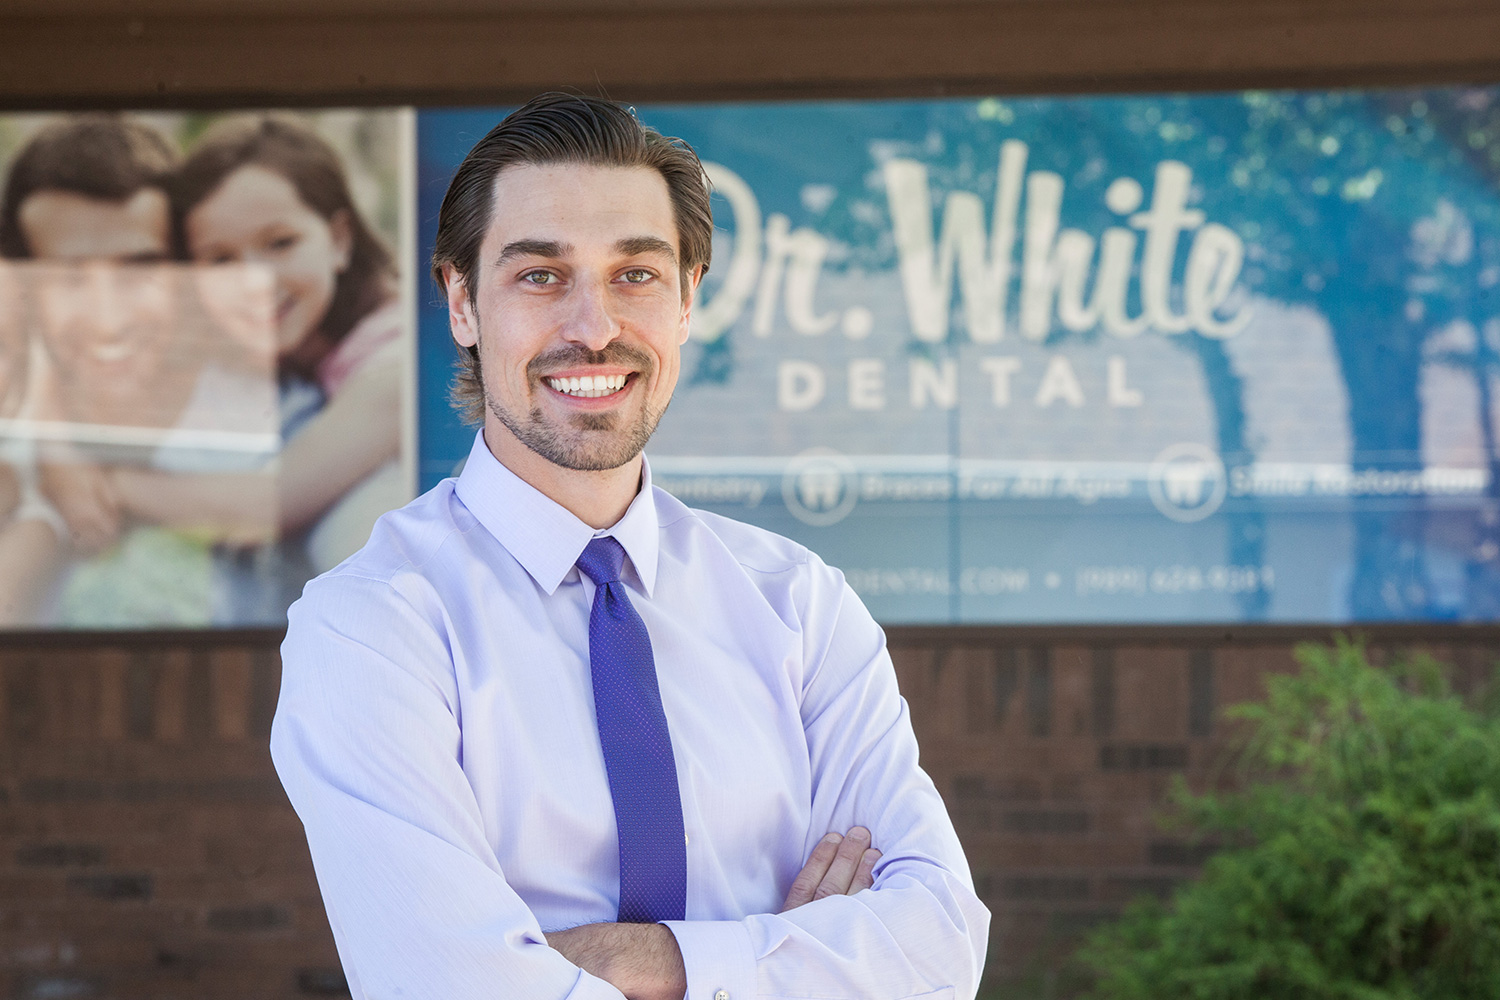 Why choose usas your dentist? - • Friendly, caring, and knowledgeable staff• Comfortable environment• Extensive continuing education, including Dawson Academy• Convenient appointment times• Most insurance accepted